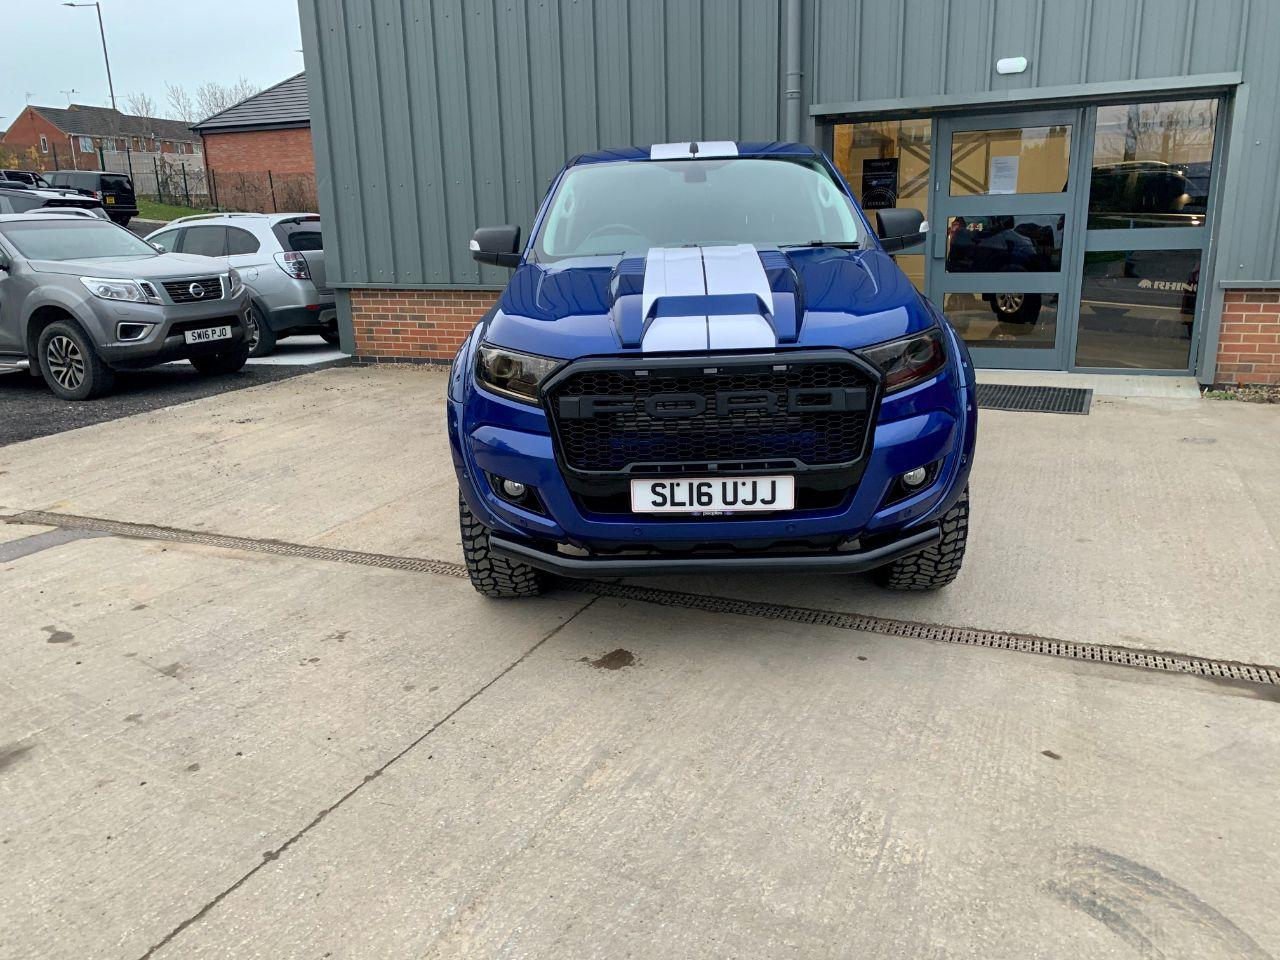 2016 Ford Ranger Seeker raptor GT edition Pick Up Double Cab Limited 1 3.2 TDCi 250 BHP UPRATED BEAST